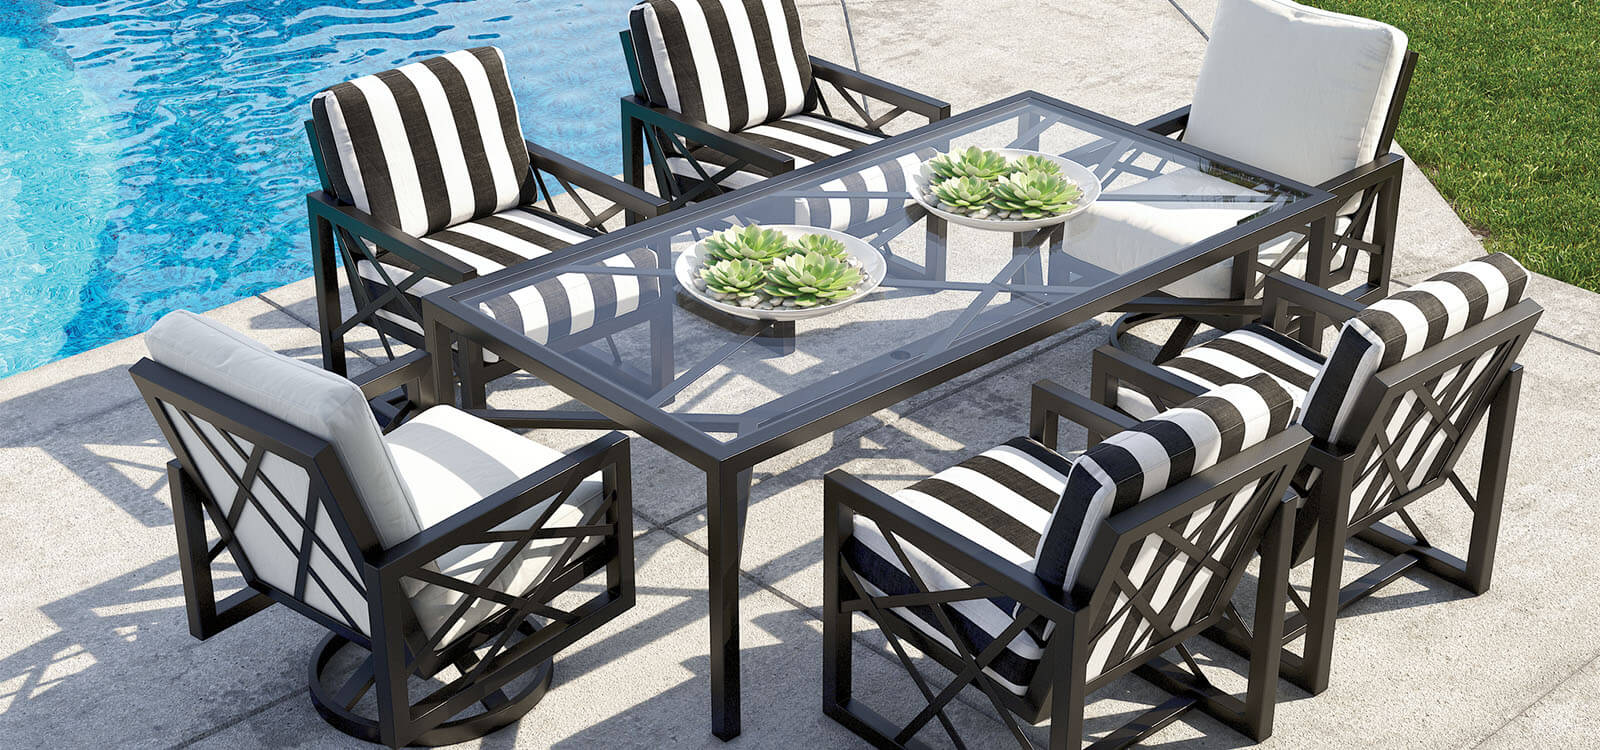 Patio & Outdoor Furniture in Jupiter, FL - Casual Living ... on Porch & Patio Casual Living id=58875